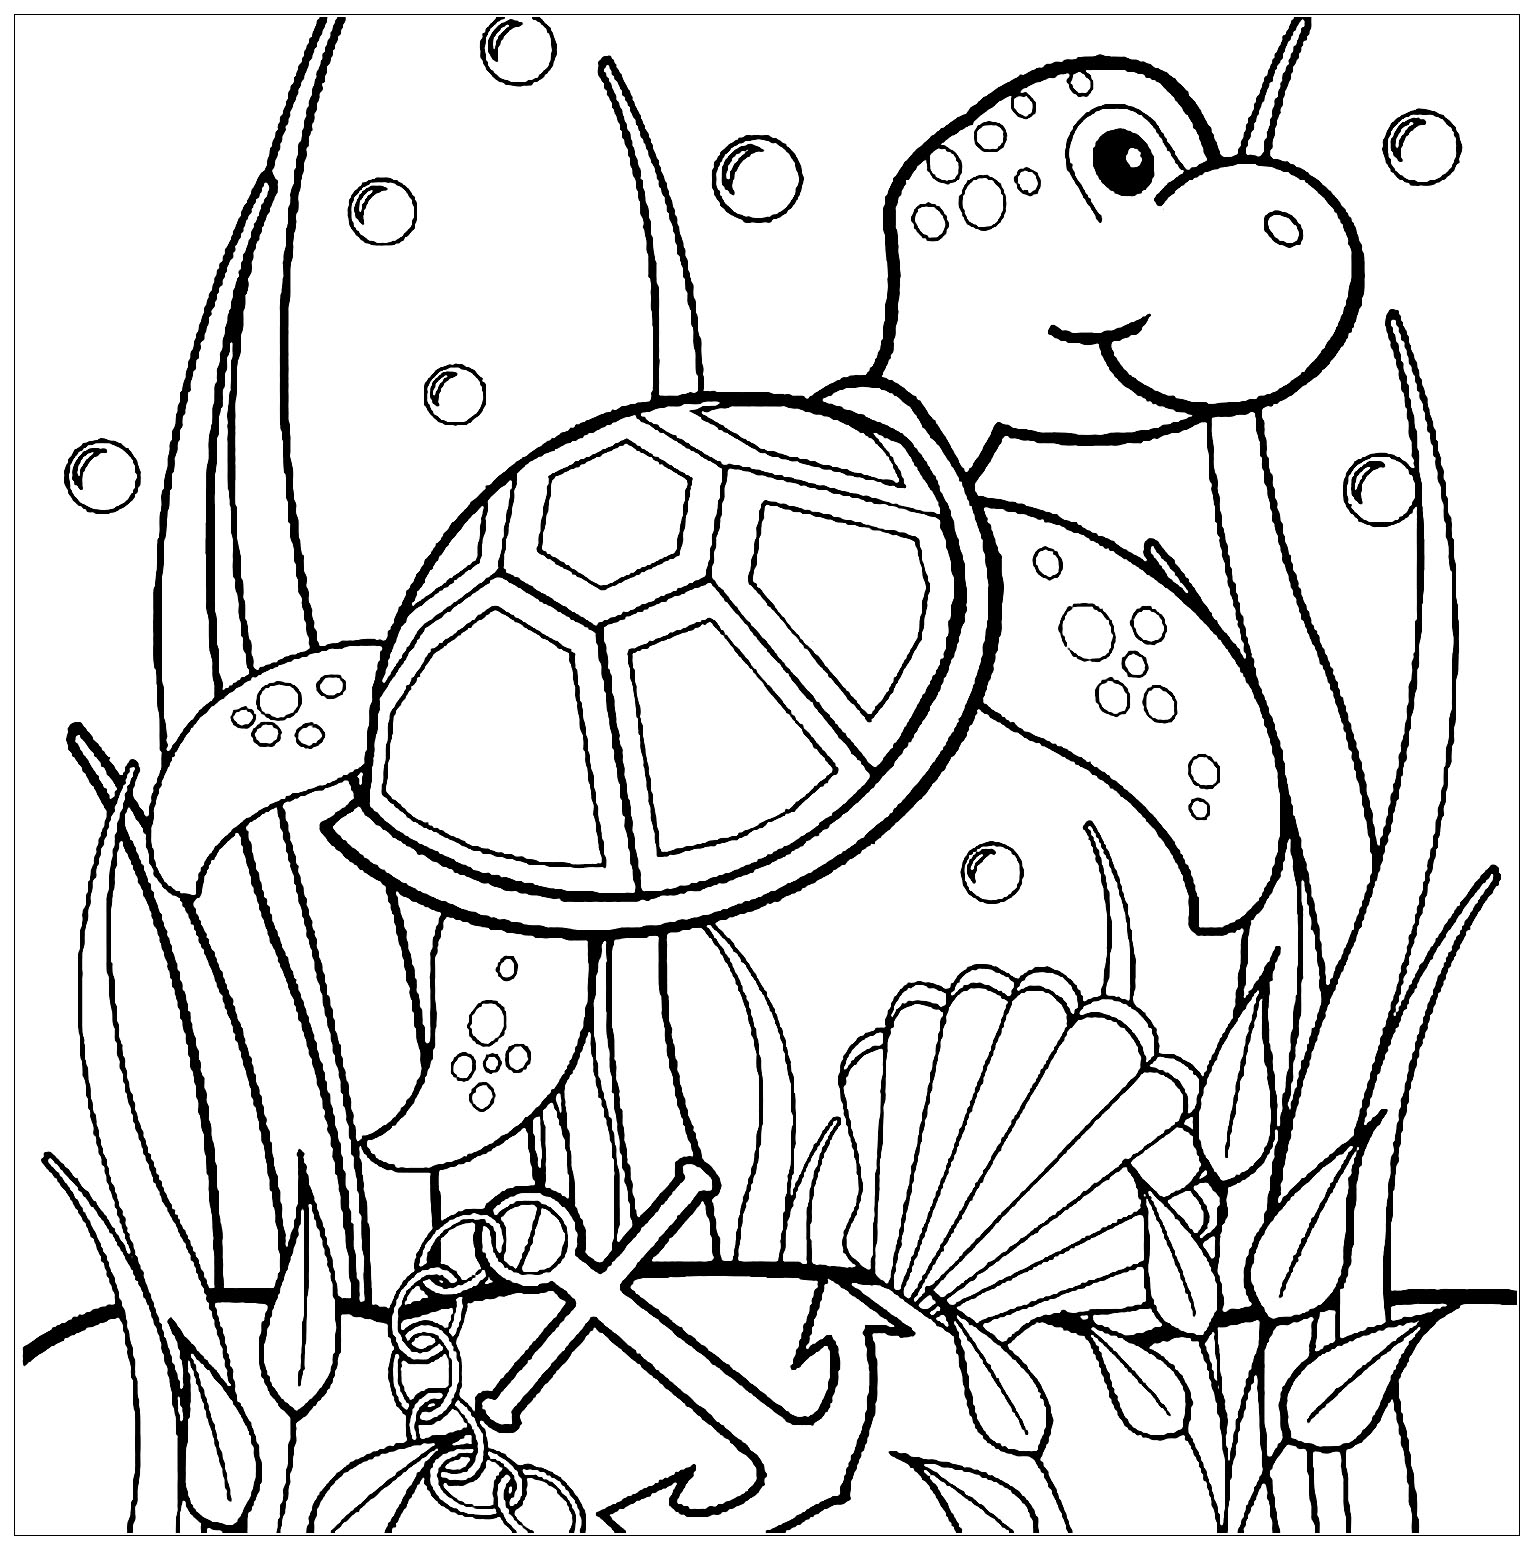 coloring pages of turtle turtles to print turtles kids coloring pages turtle pages of coloring